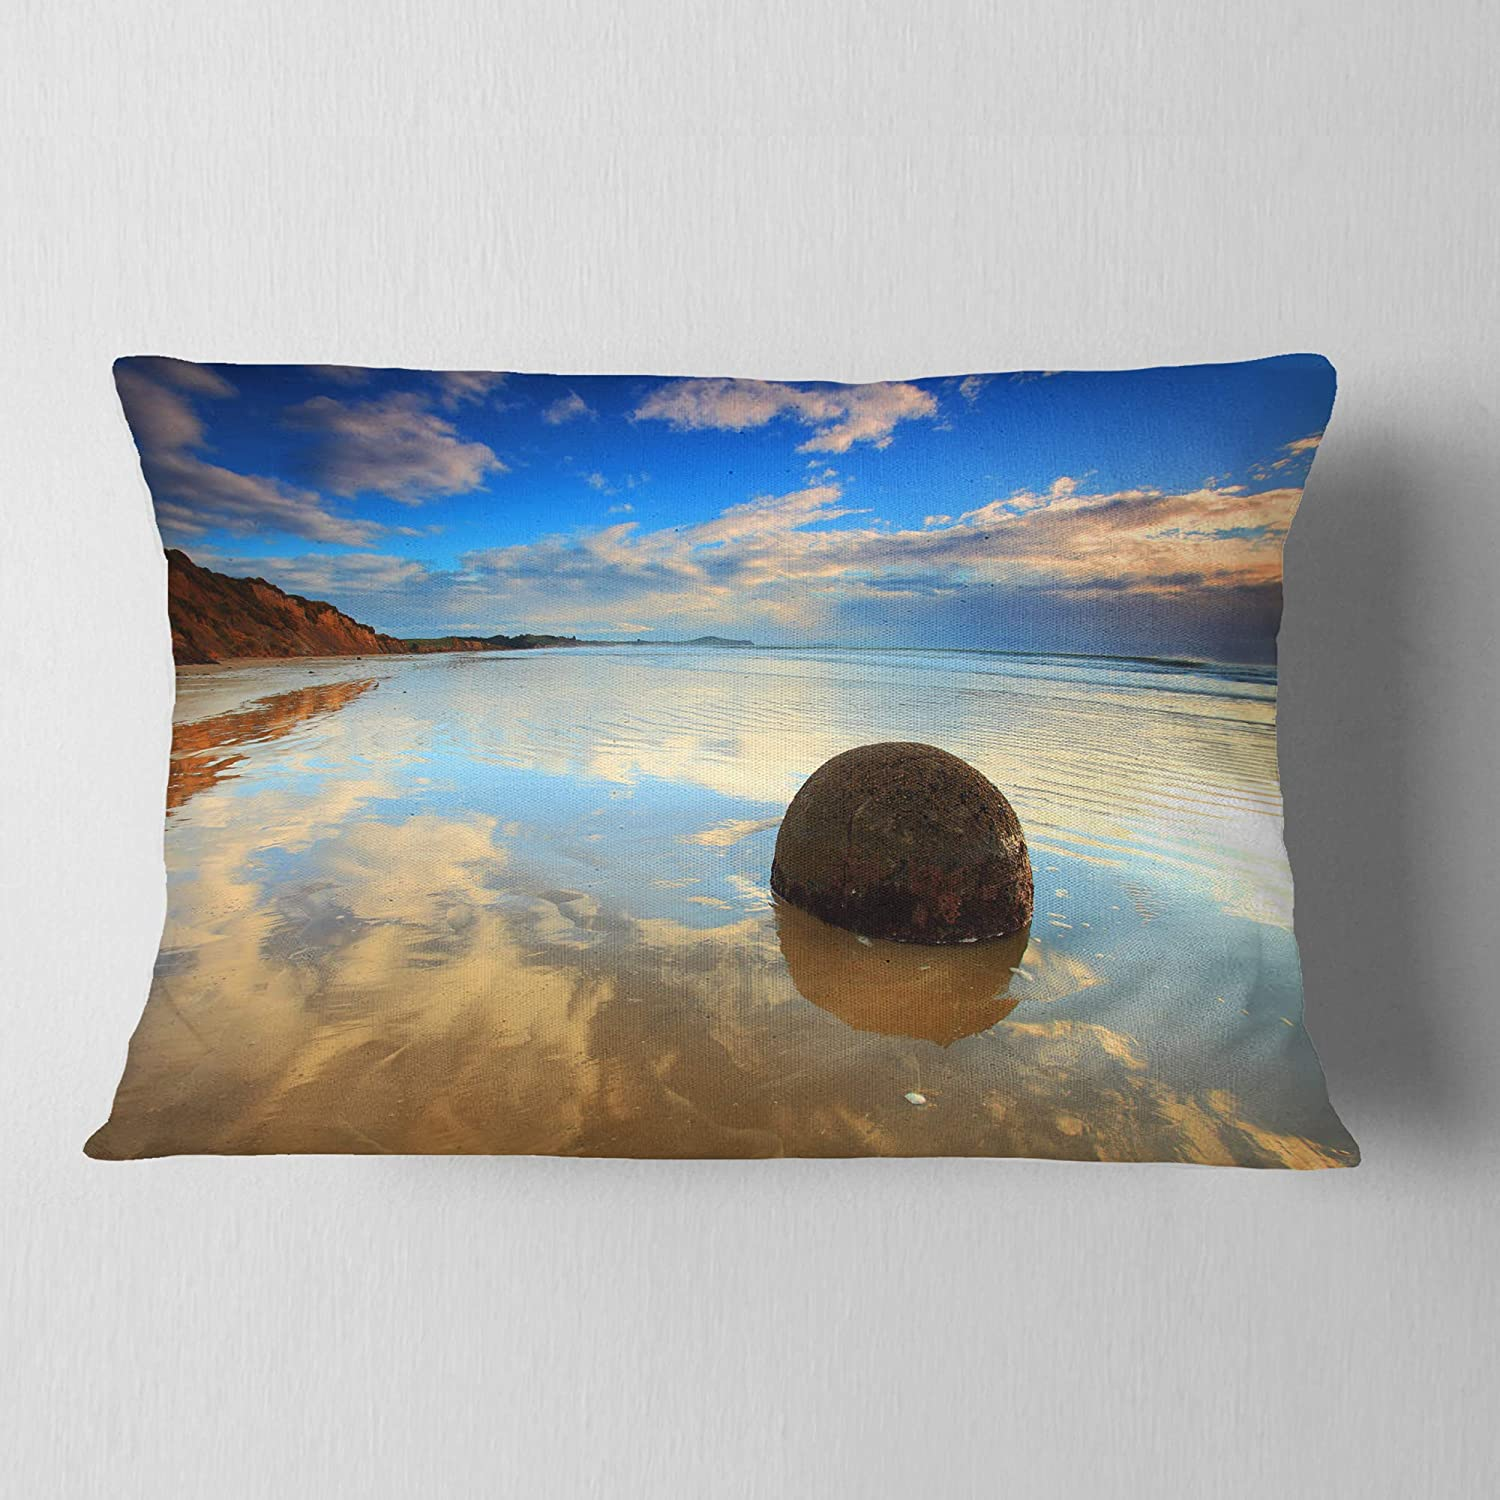 x 20 in Designart CU9463-12-20 Sunrise at Moeraki Boulders Seashore Photo Lumbar Cushion Cover for Living Room 12 in Insert Printed On Both Side Sofa Throw Pillow